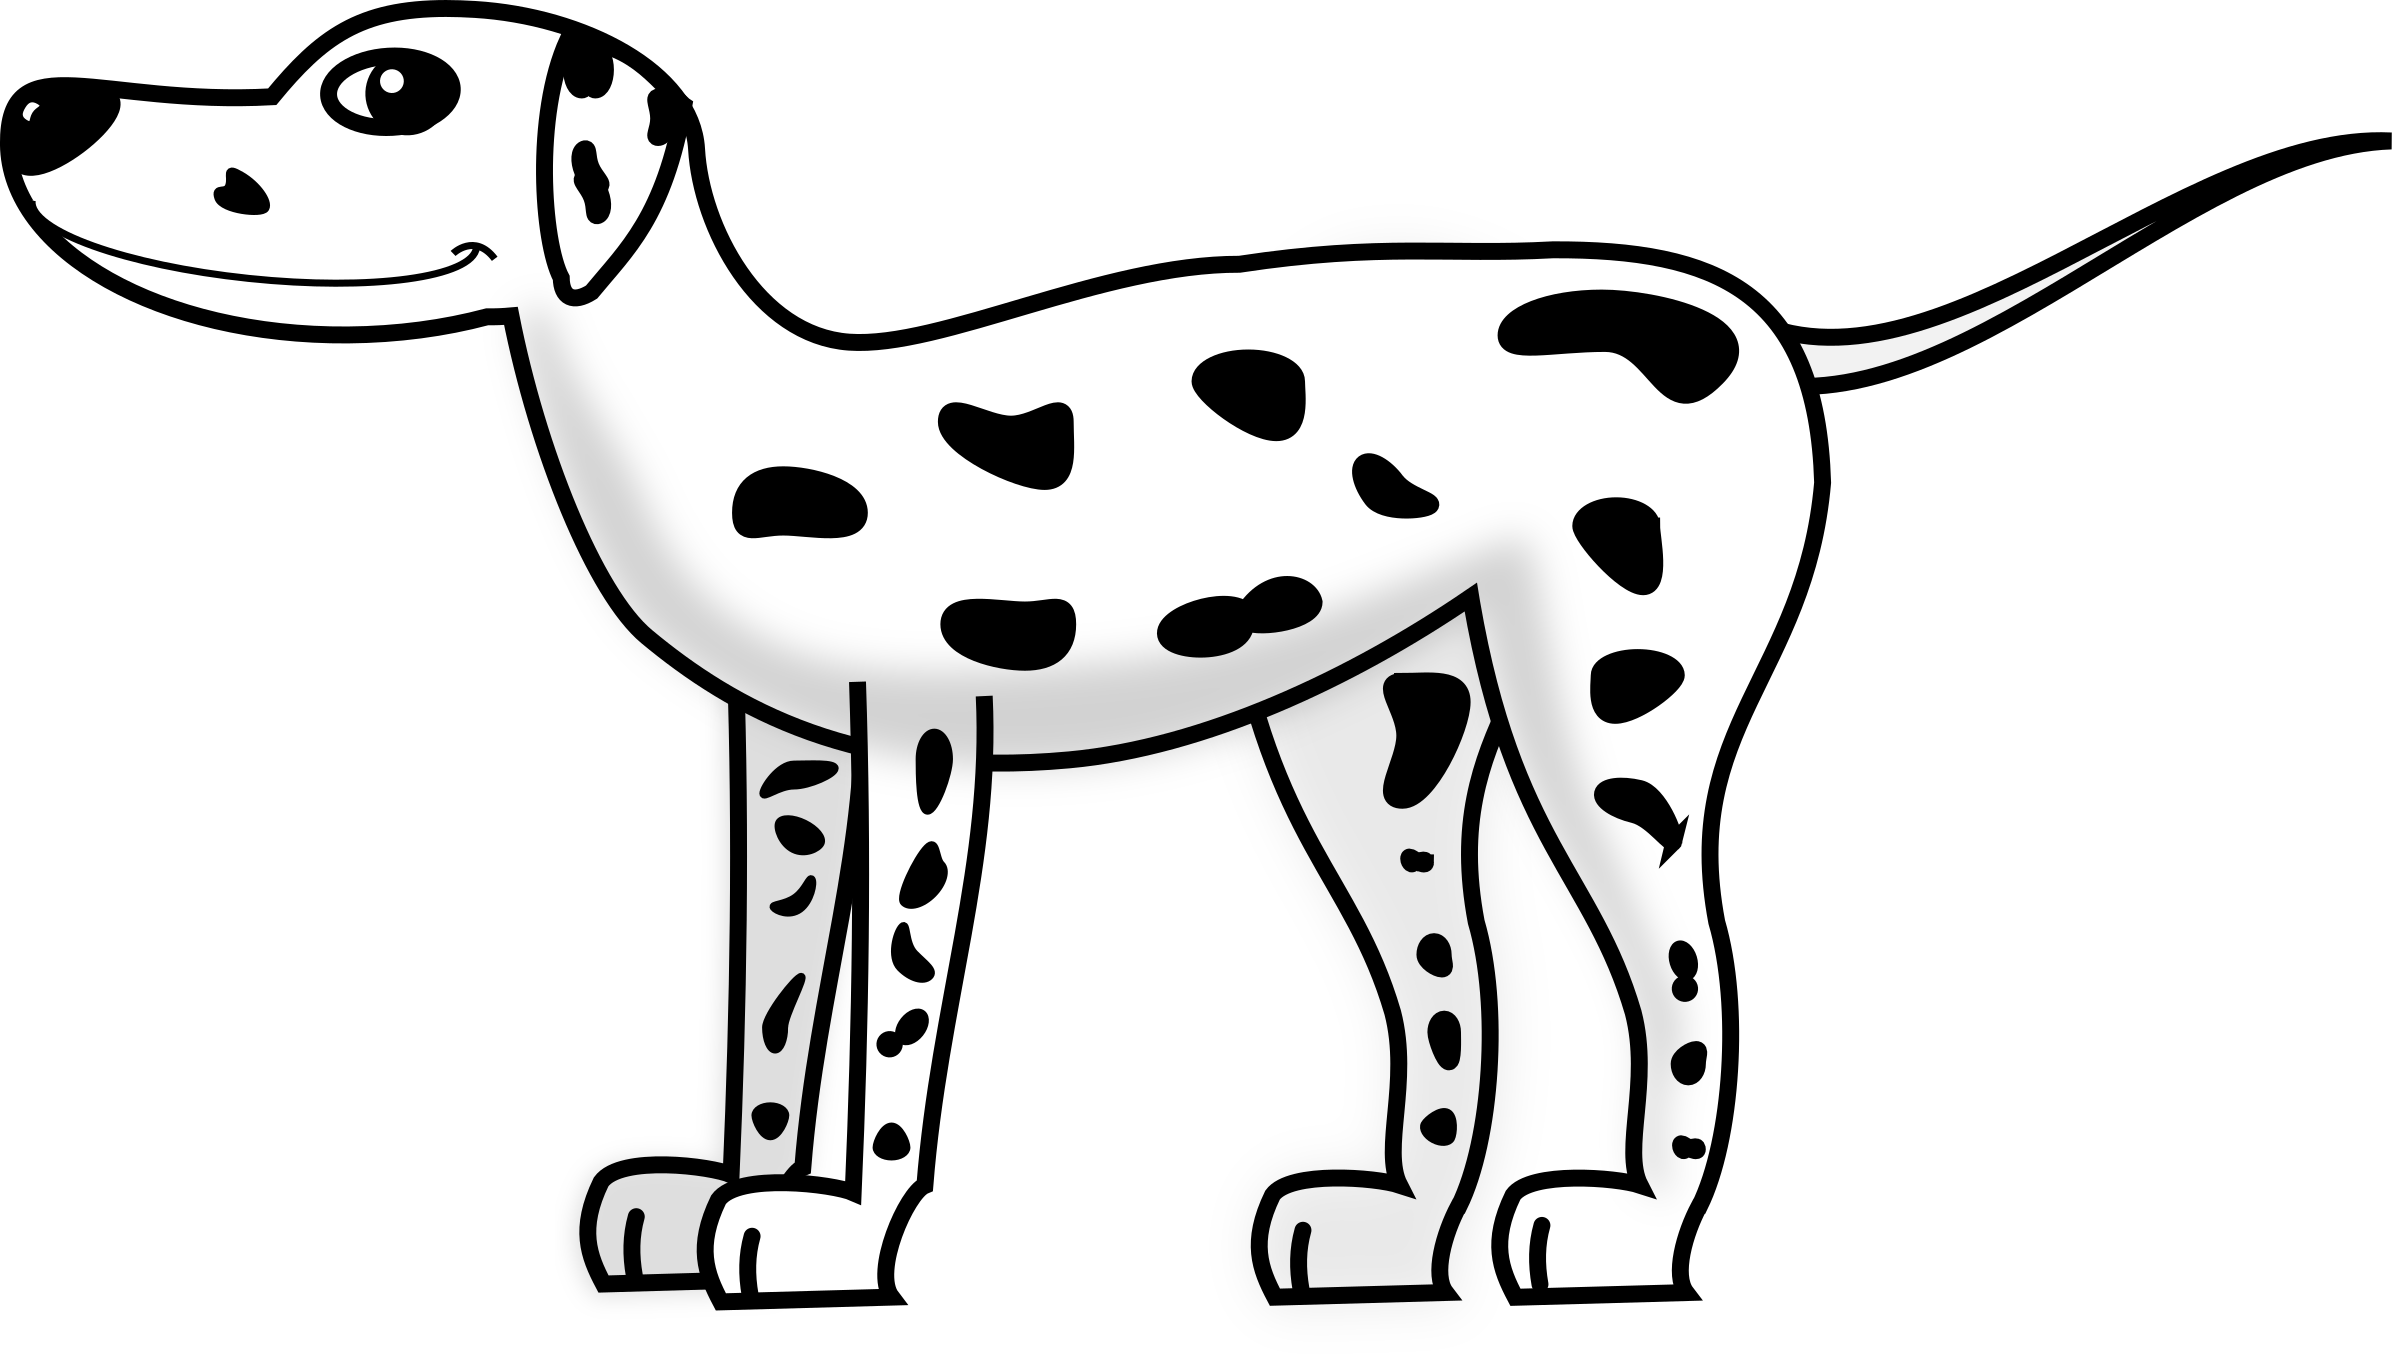 Dalmatian by TomBrough